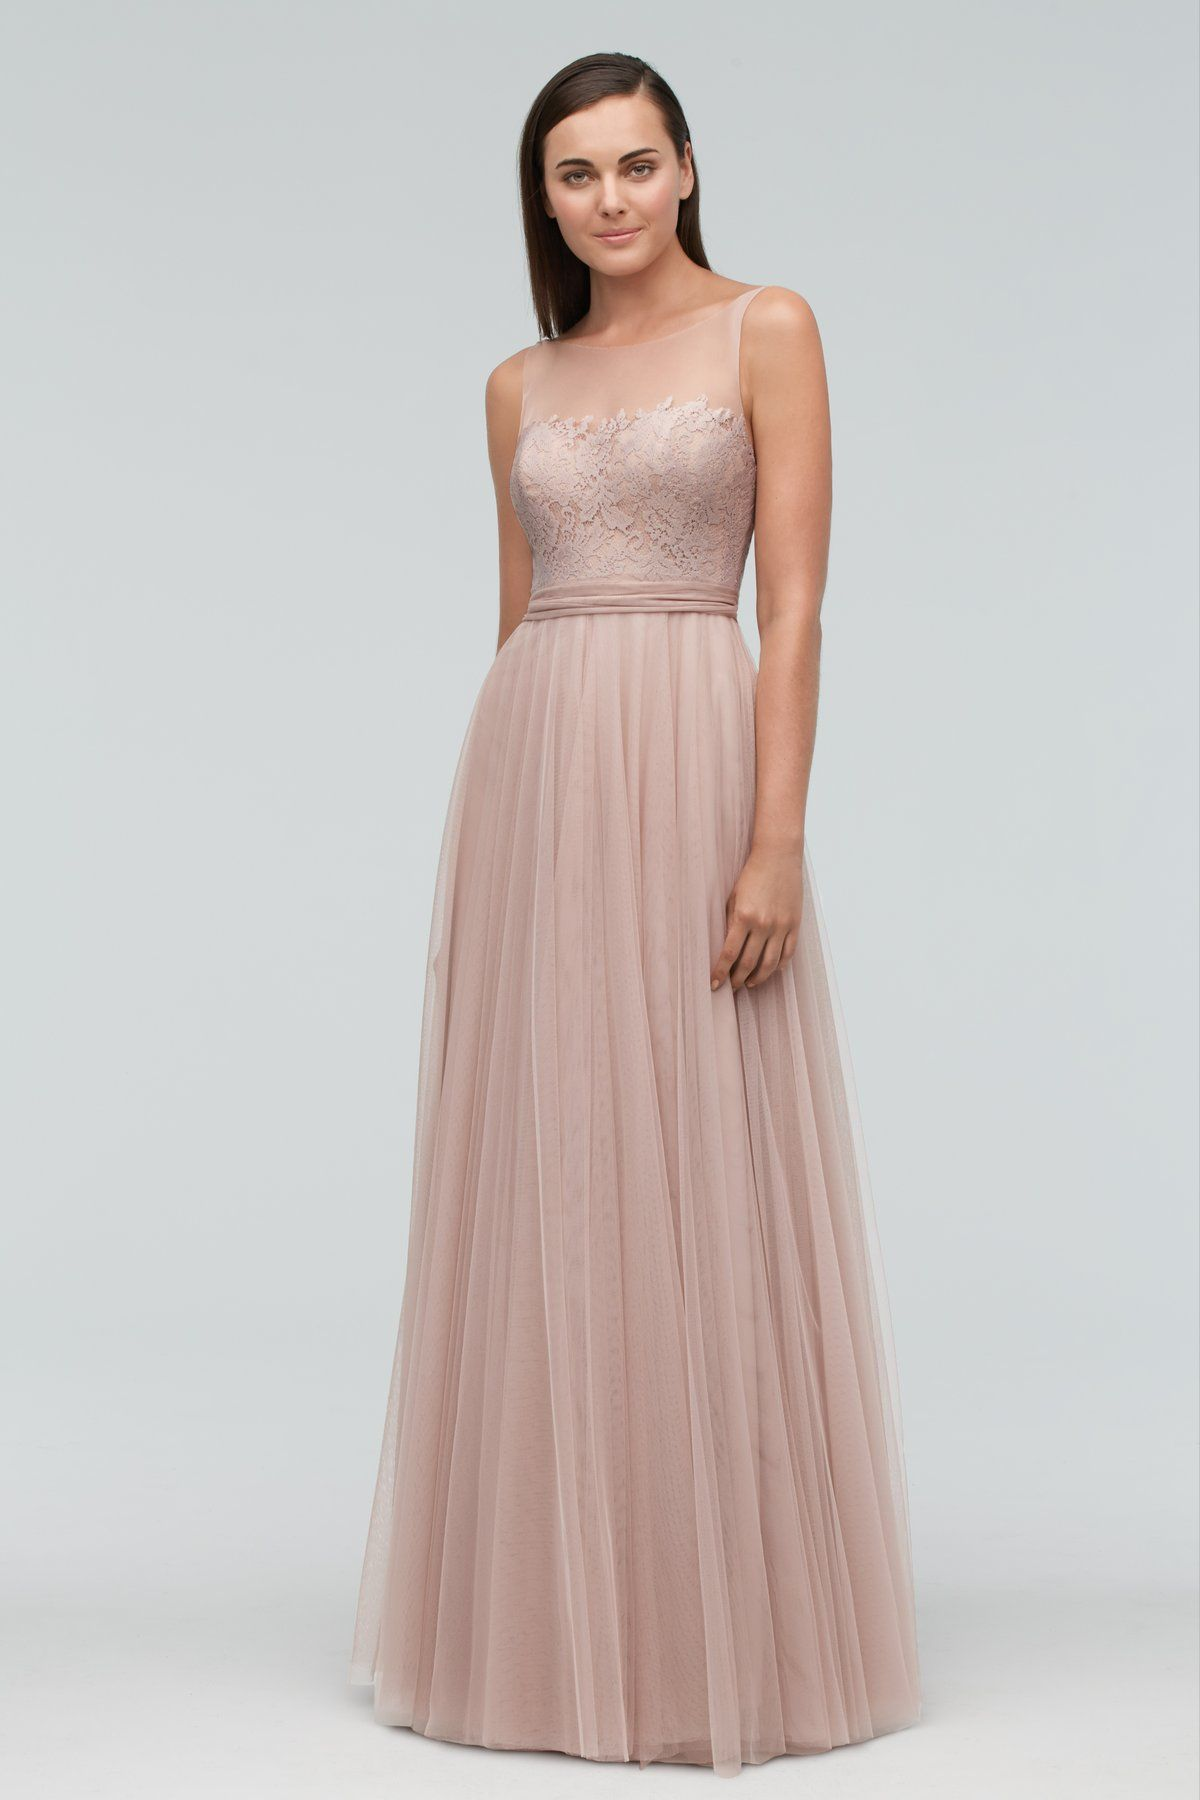 Watters Maids Dress Lisa | DRESS LISA STYLE 9623 | color blush ...